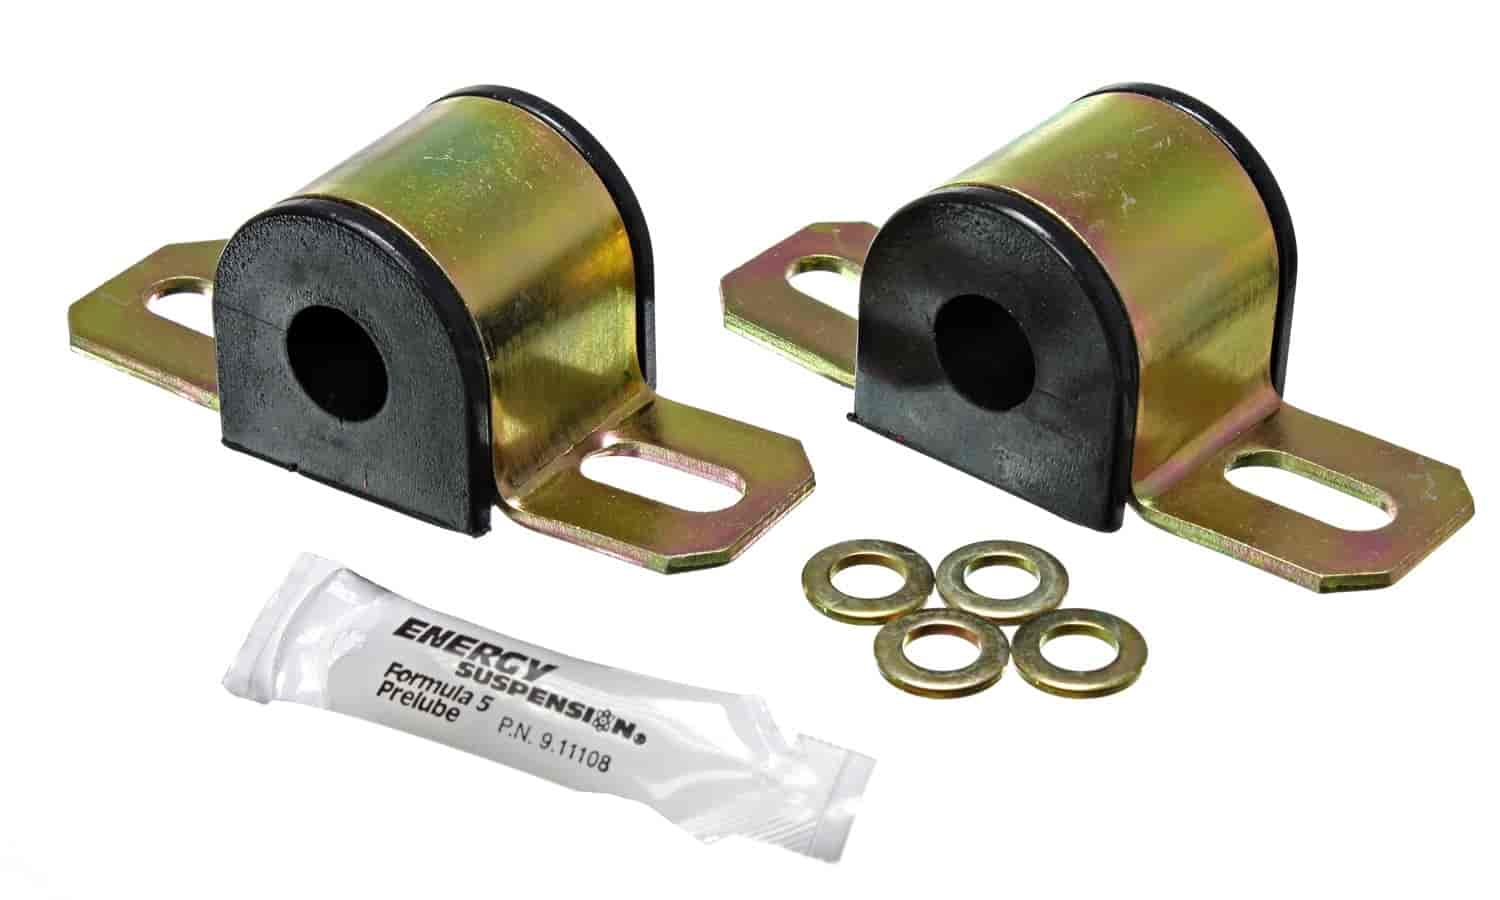 Energy Suspension 9-5103G